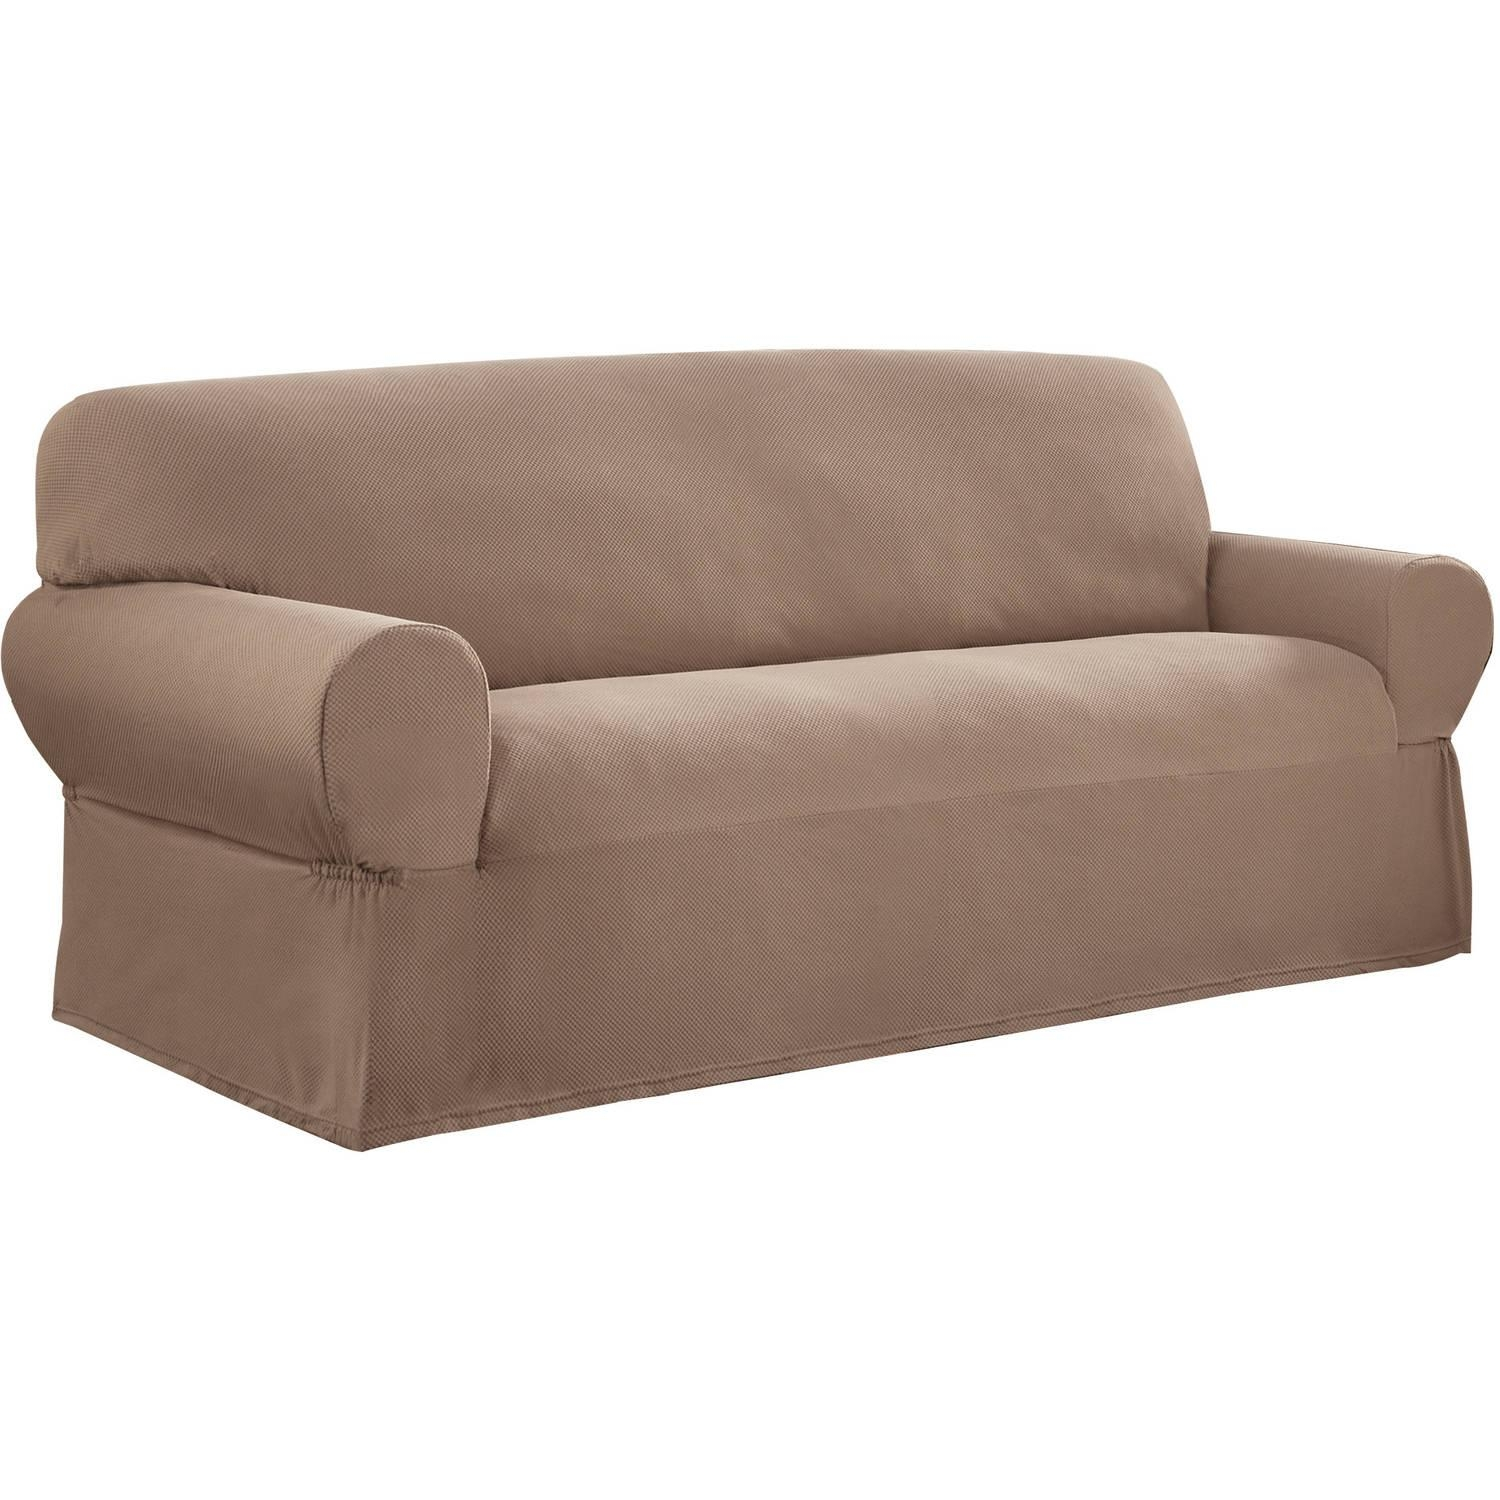 Furniture: Sofa Covers Walmart | Walmart Couch Covers | Slip With Covers For Sofas (Image 11 of 20)